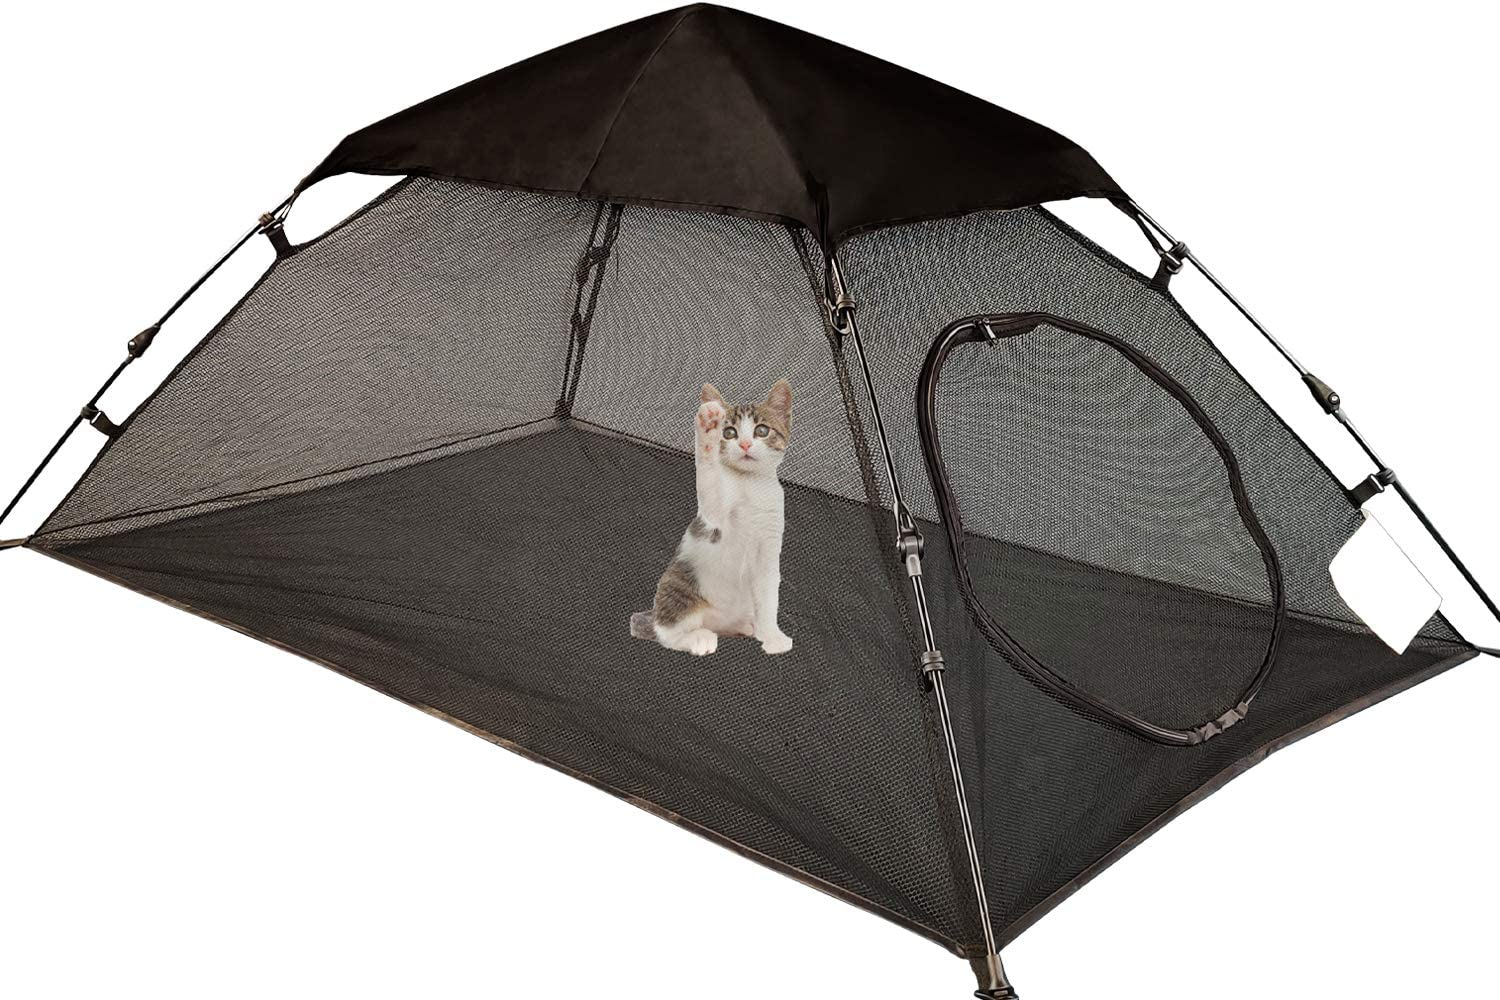 OUTING MAN Mini Cat Tent Outdoor Playpen Pop Up Pet Cat Enclosures Portable Sunshade and Anti-UV Cat Playhouse for SUV Pickup Truck (Play Tents for Cats and Small Animals) - Outside Habitat